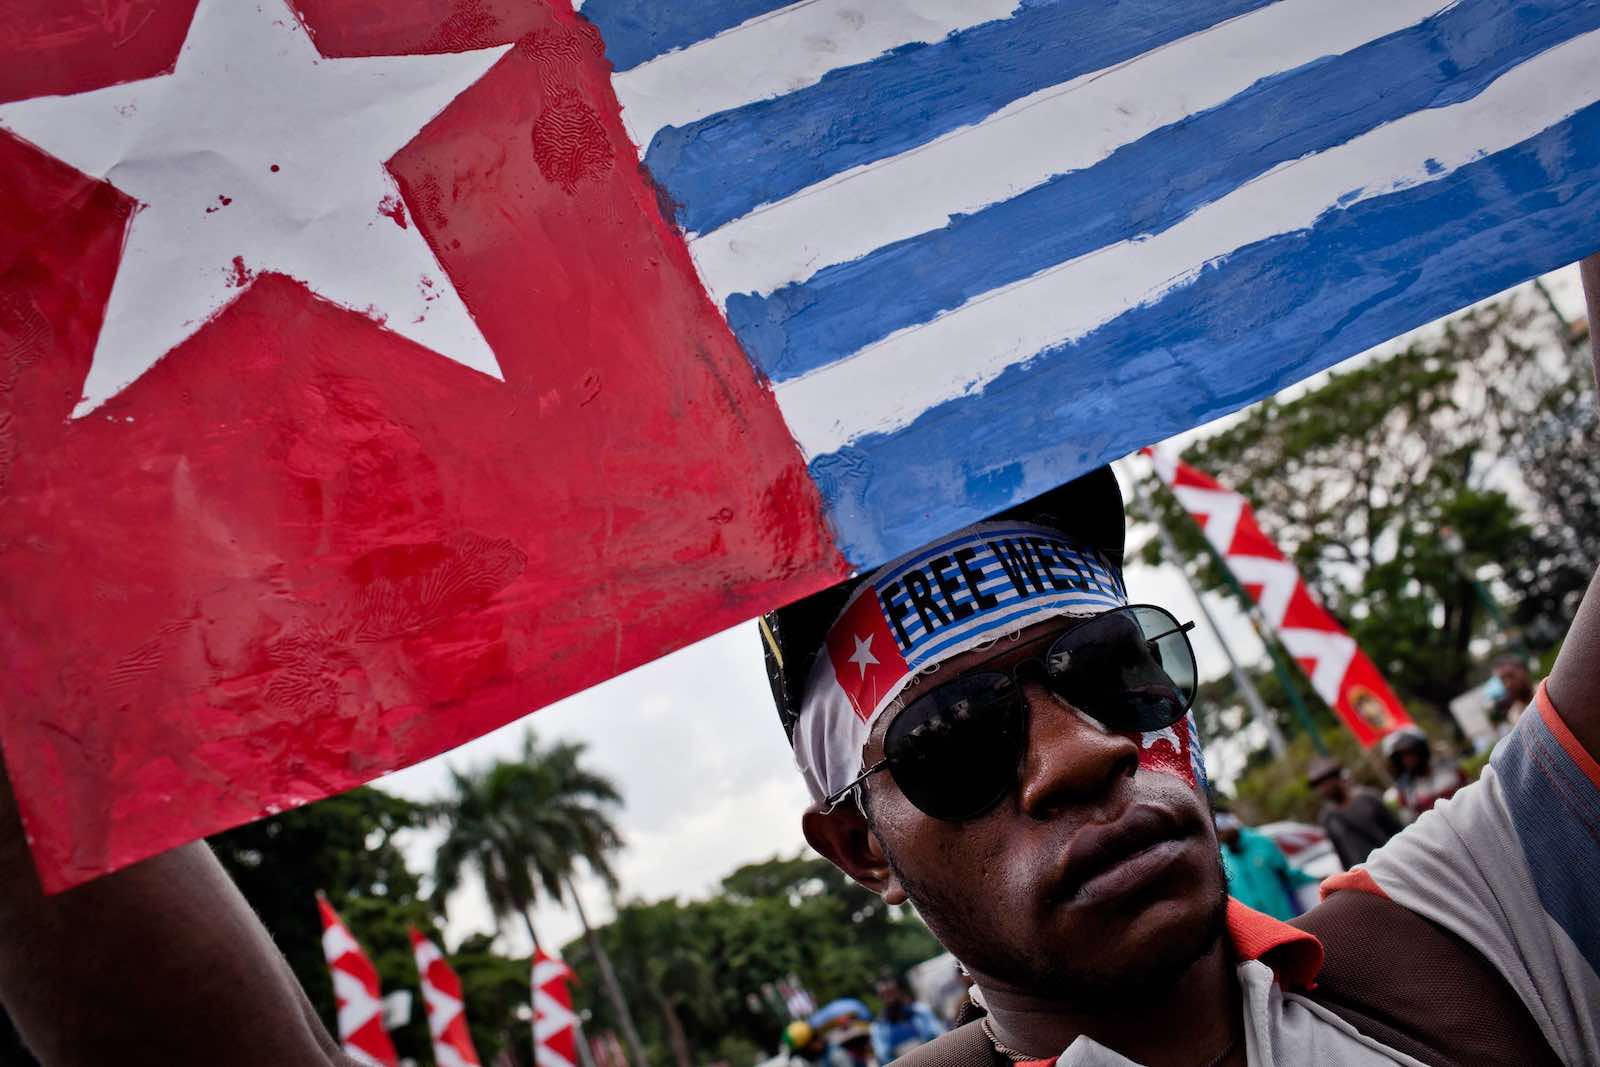 Pacific Island Forum members are increasingly frustrated its attempts so far to engage with Indonesia over West Papua have come to little (Photo: Ulet Ifansasti/Getty)